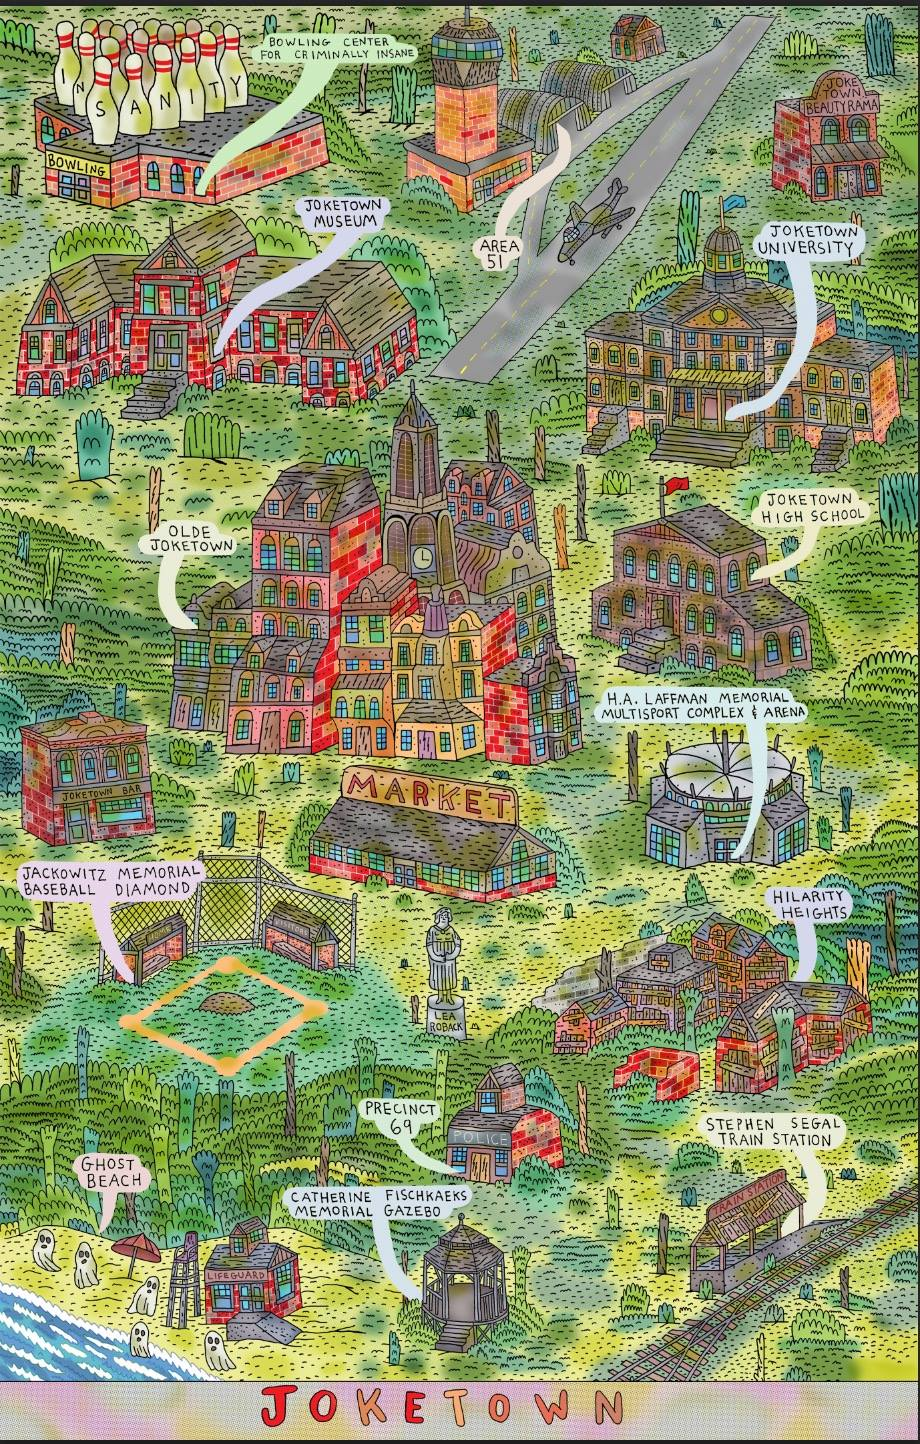 Keith Jones amazing map of Joketown.